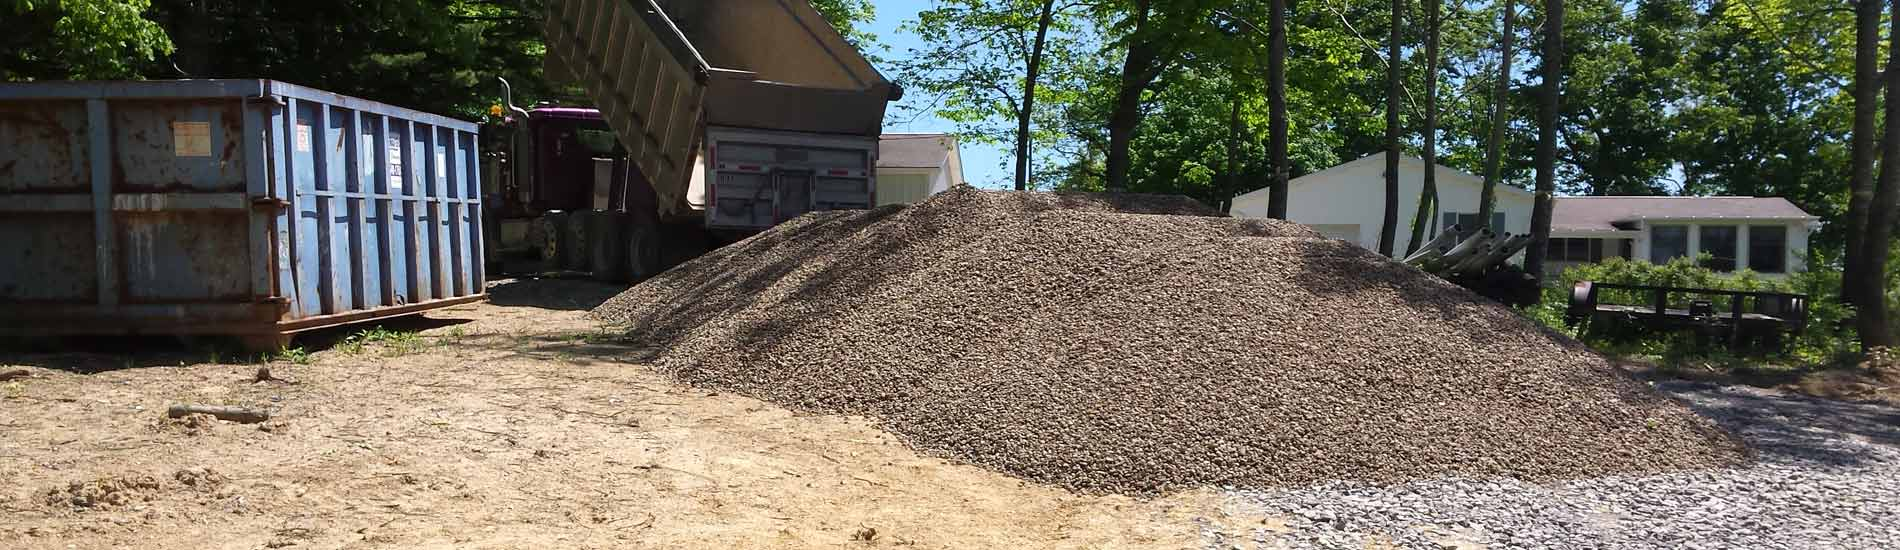 Dump truck delivering aggregate for new home construction